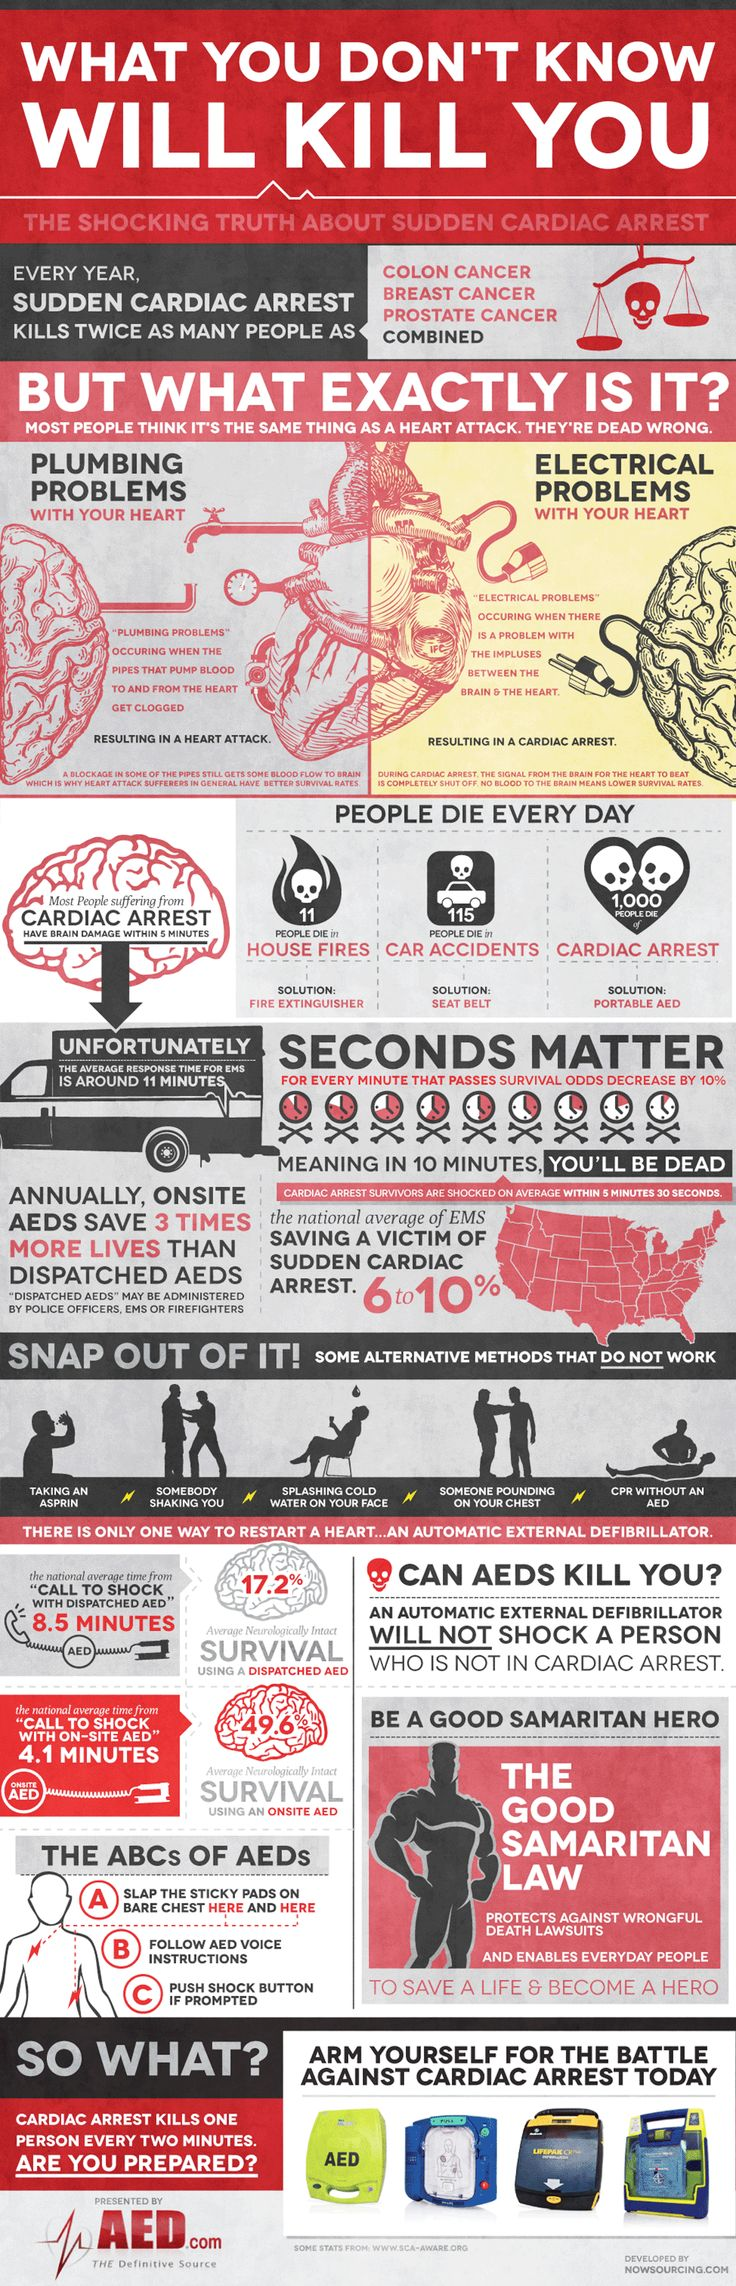 statistics-on-cardiac-arrests